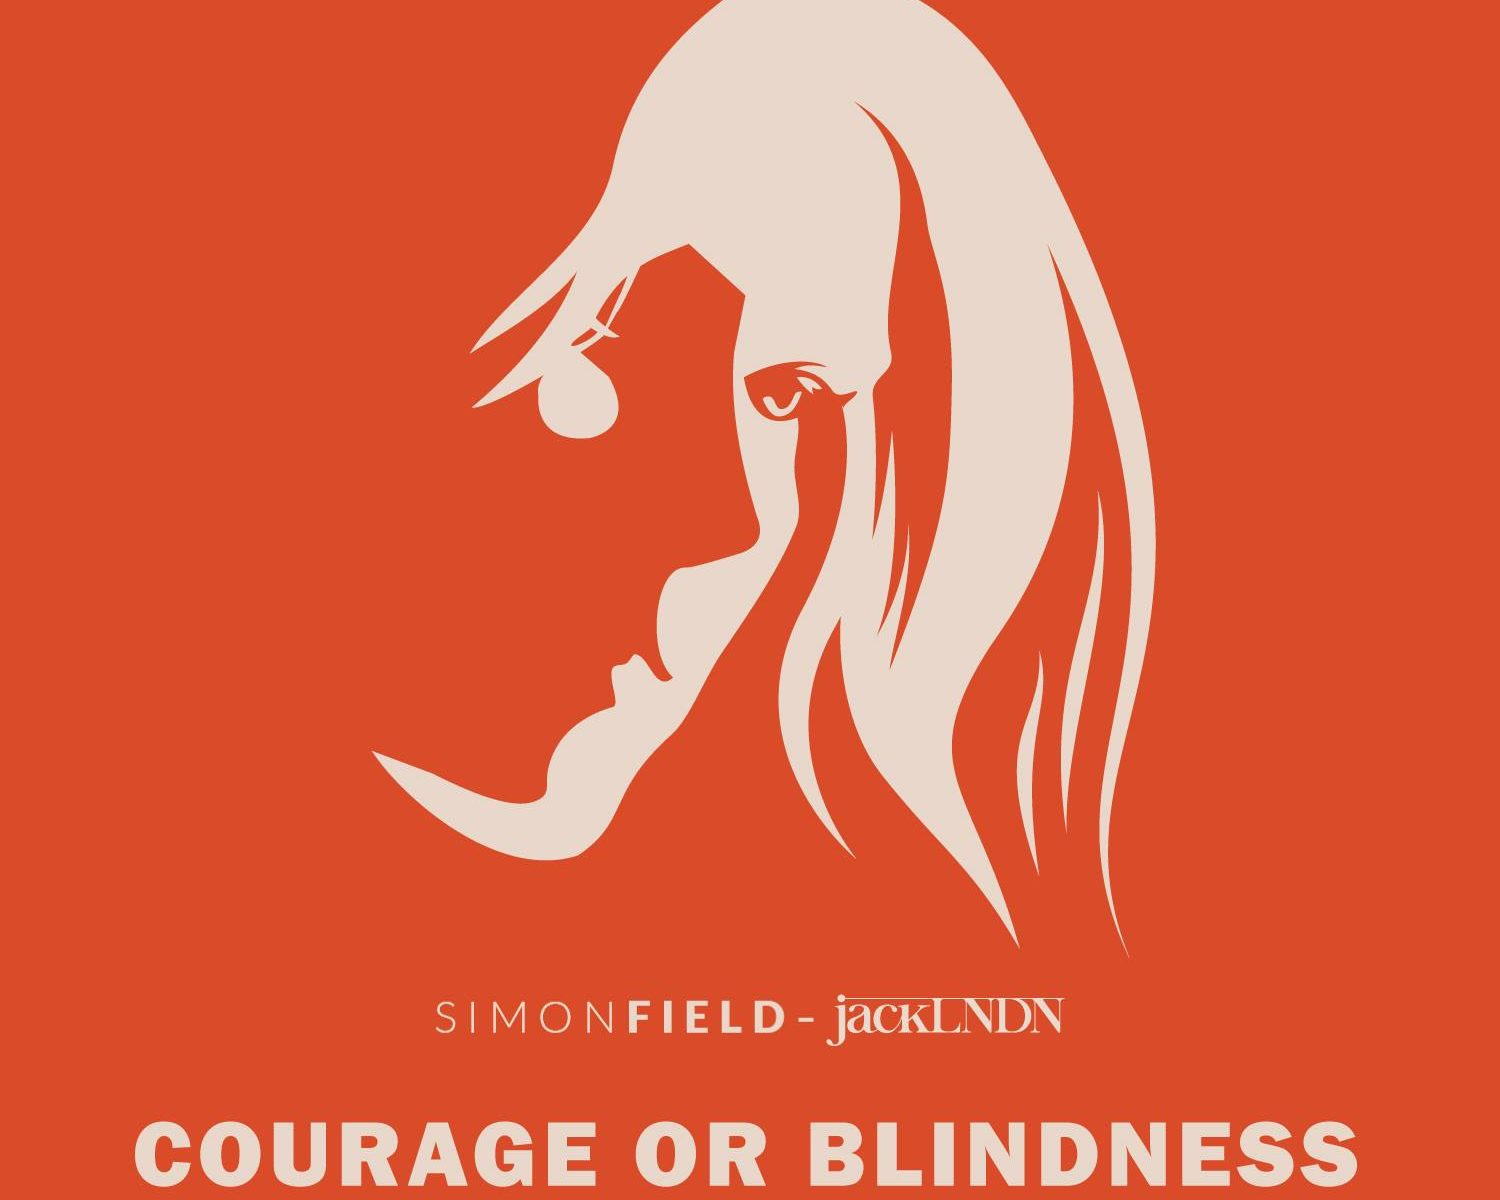 Simon Field jackLNDN Courage or Blindness